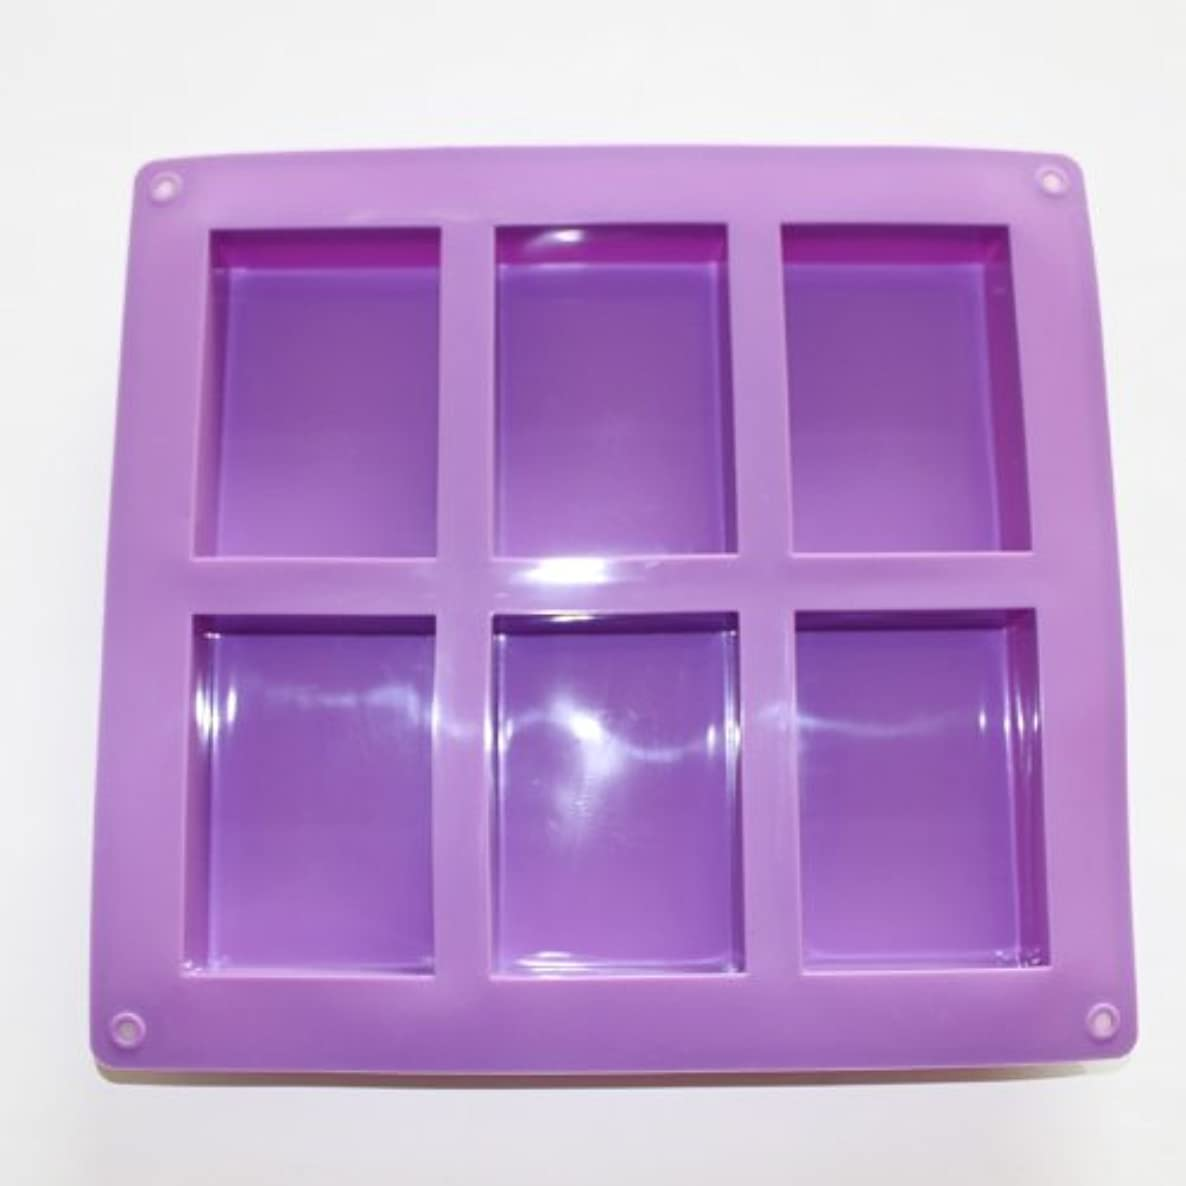 X-Haibei Plain Basic Rectangle Soap Mold Silicone HP Soap Lotion Bar Making Mould Supplies